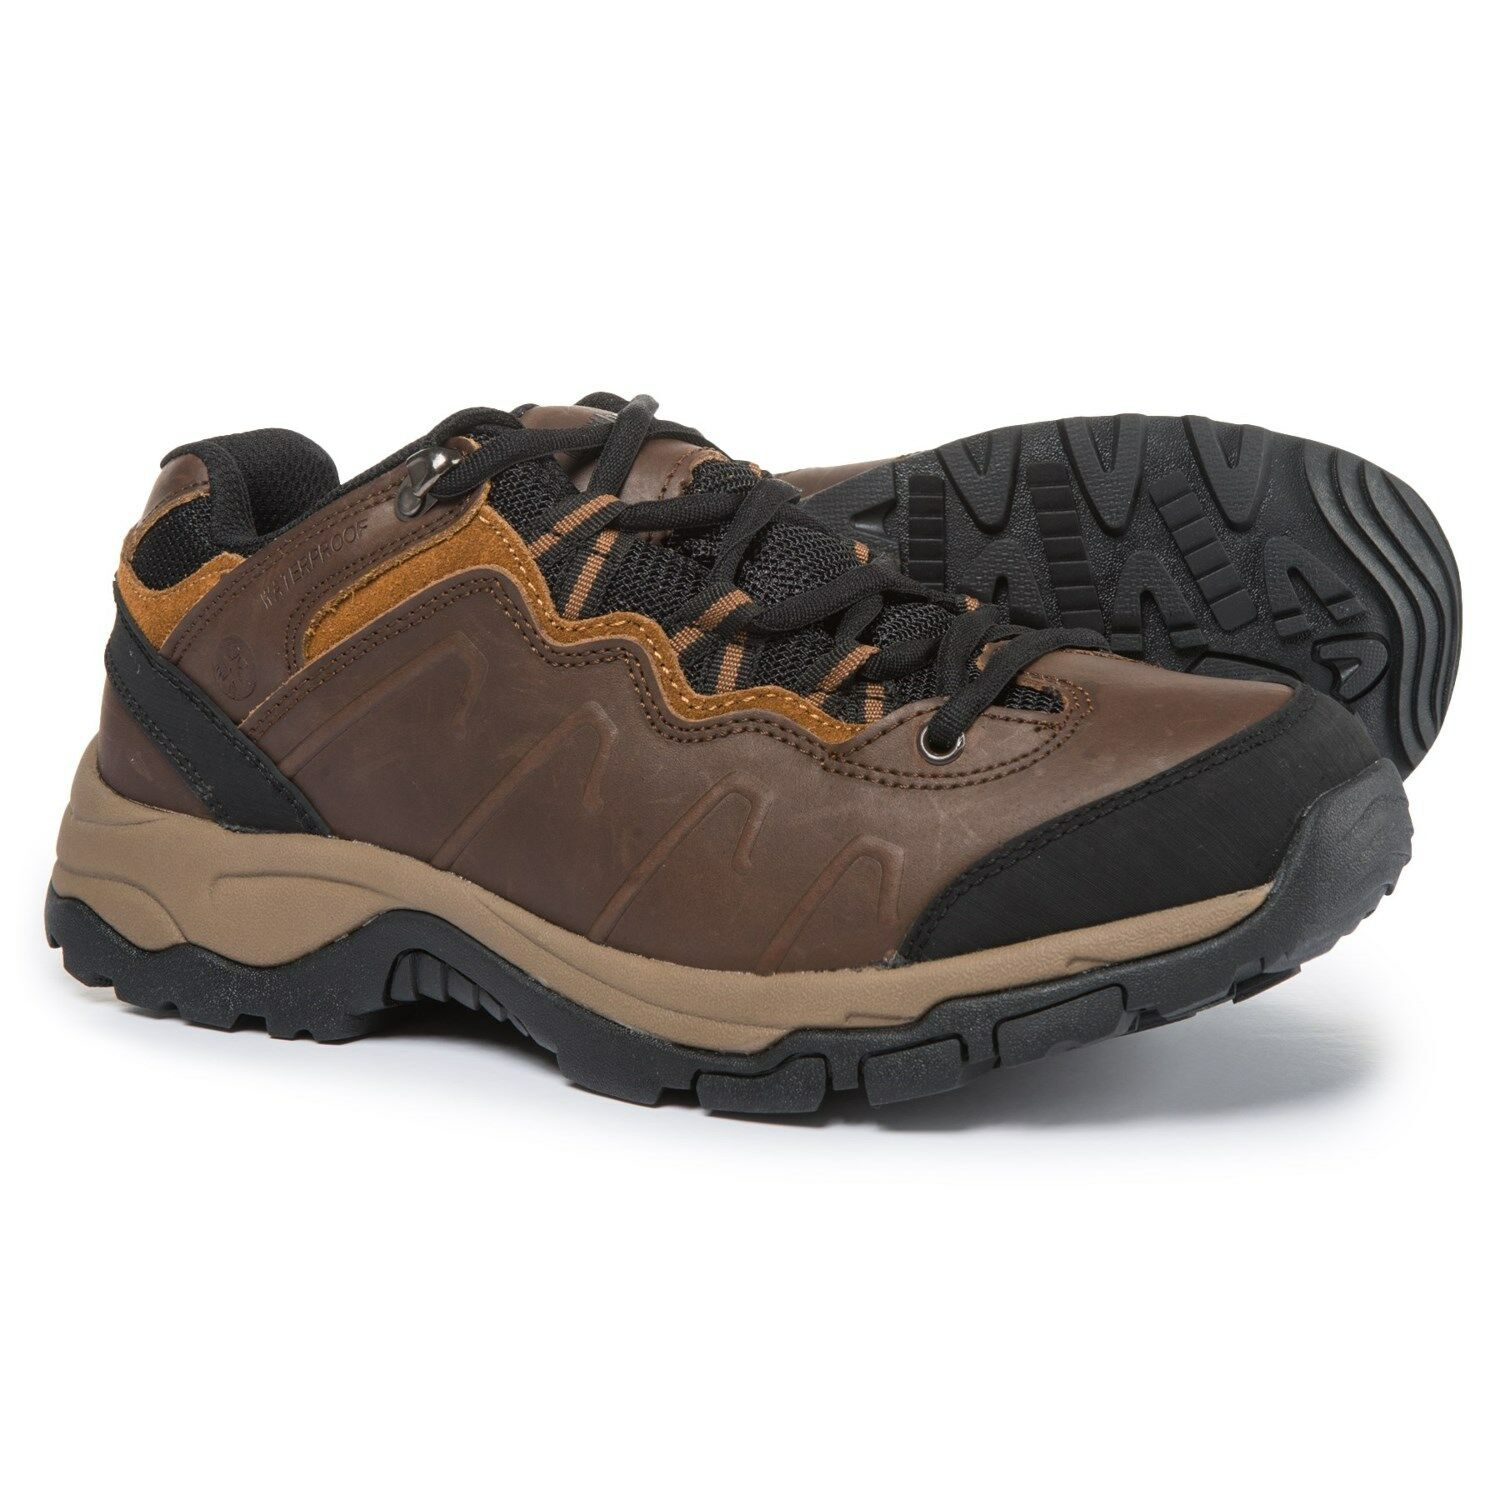 Mens Hiking shoes Waterproof Northside Talus Low Trail Sneakers Brown NEW